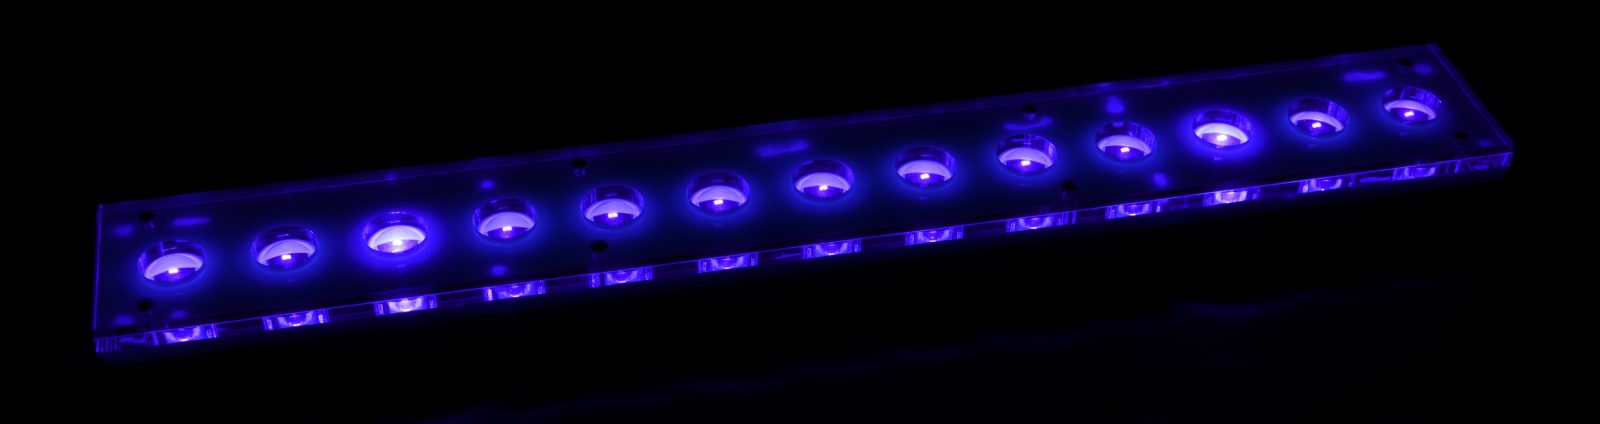 Super Biru Slim Jalur LED-violet